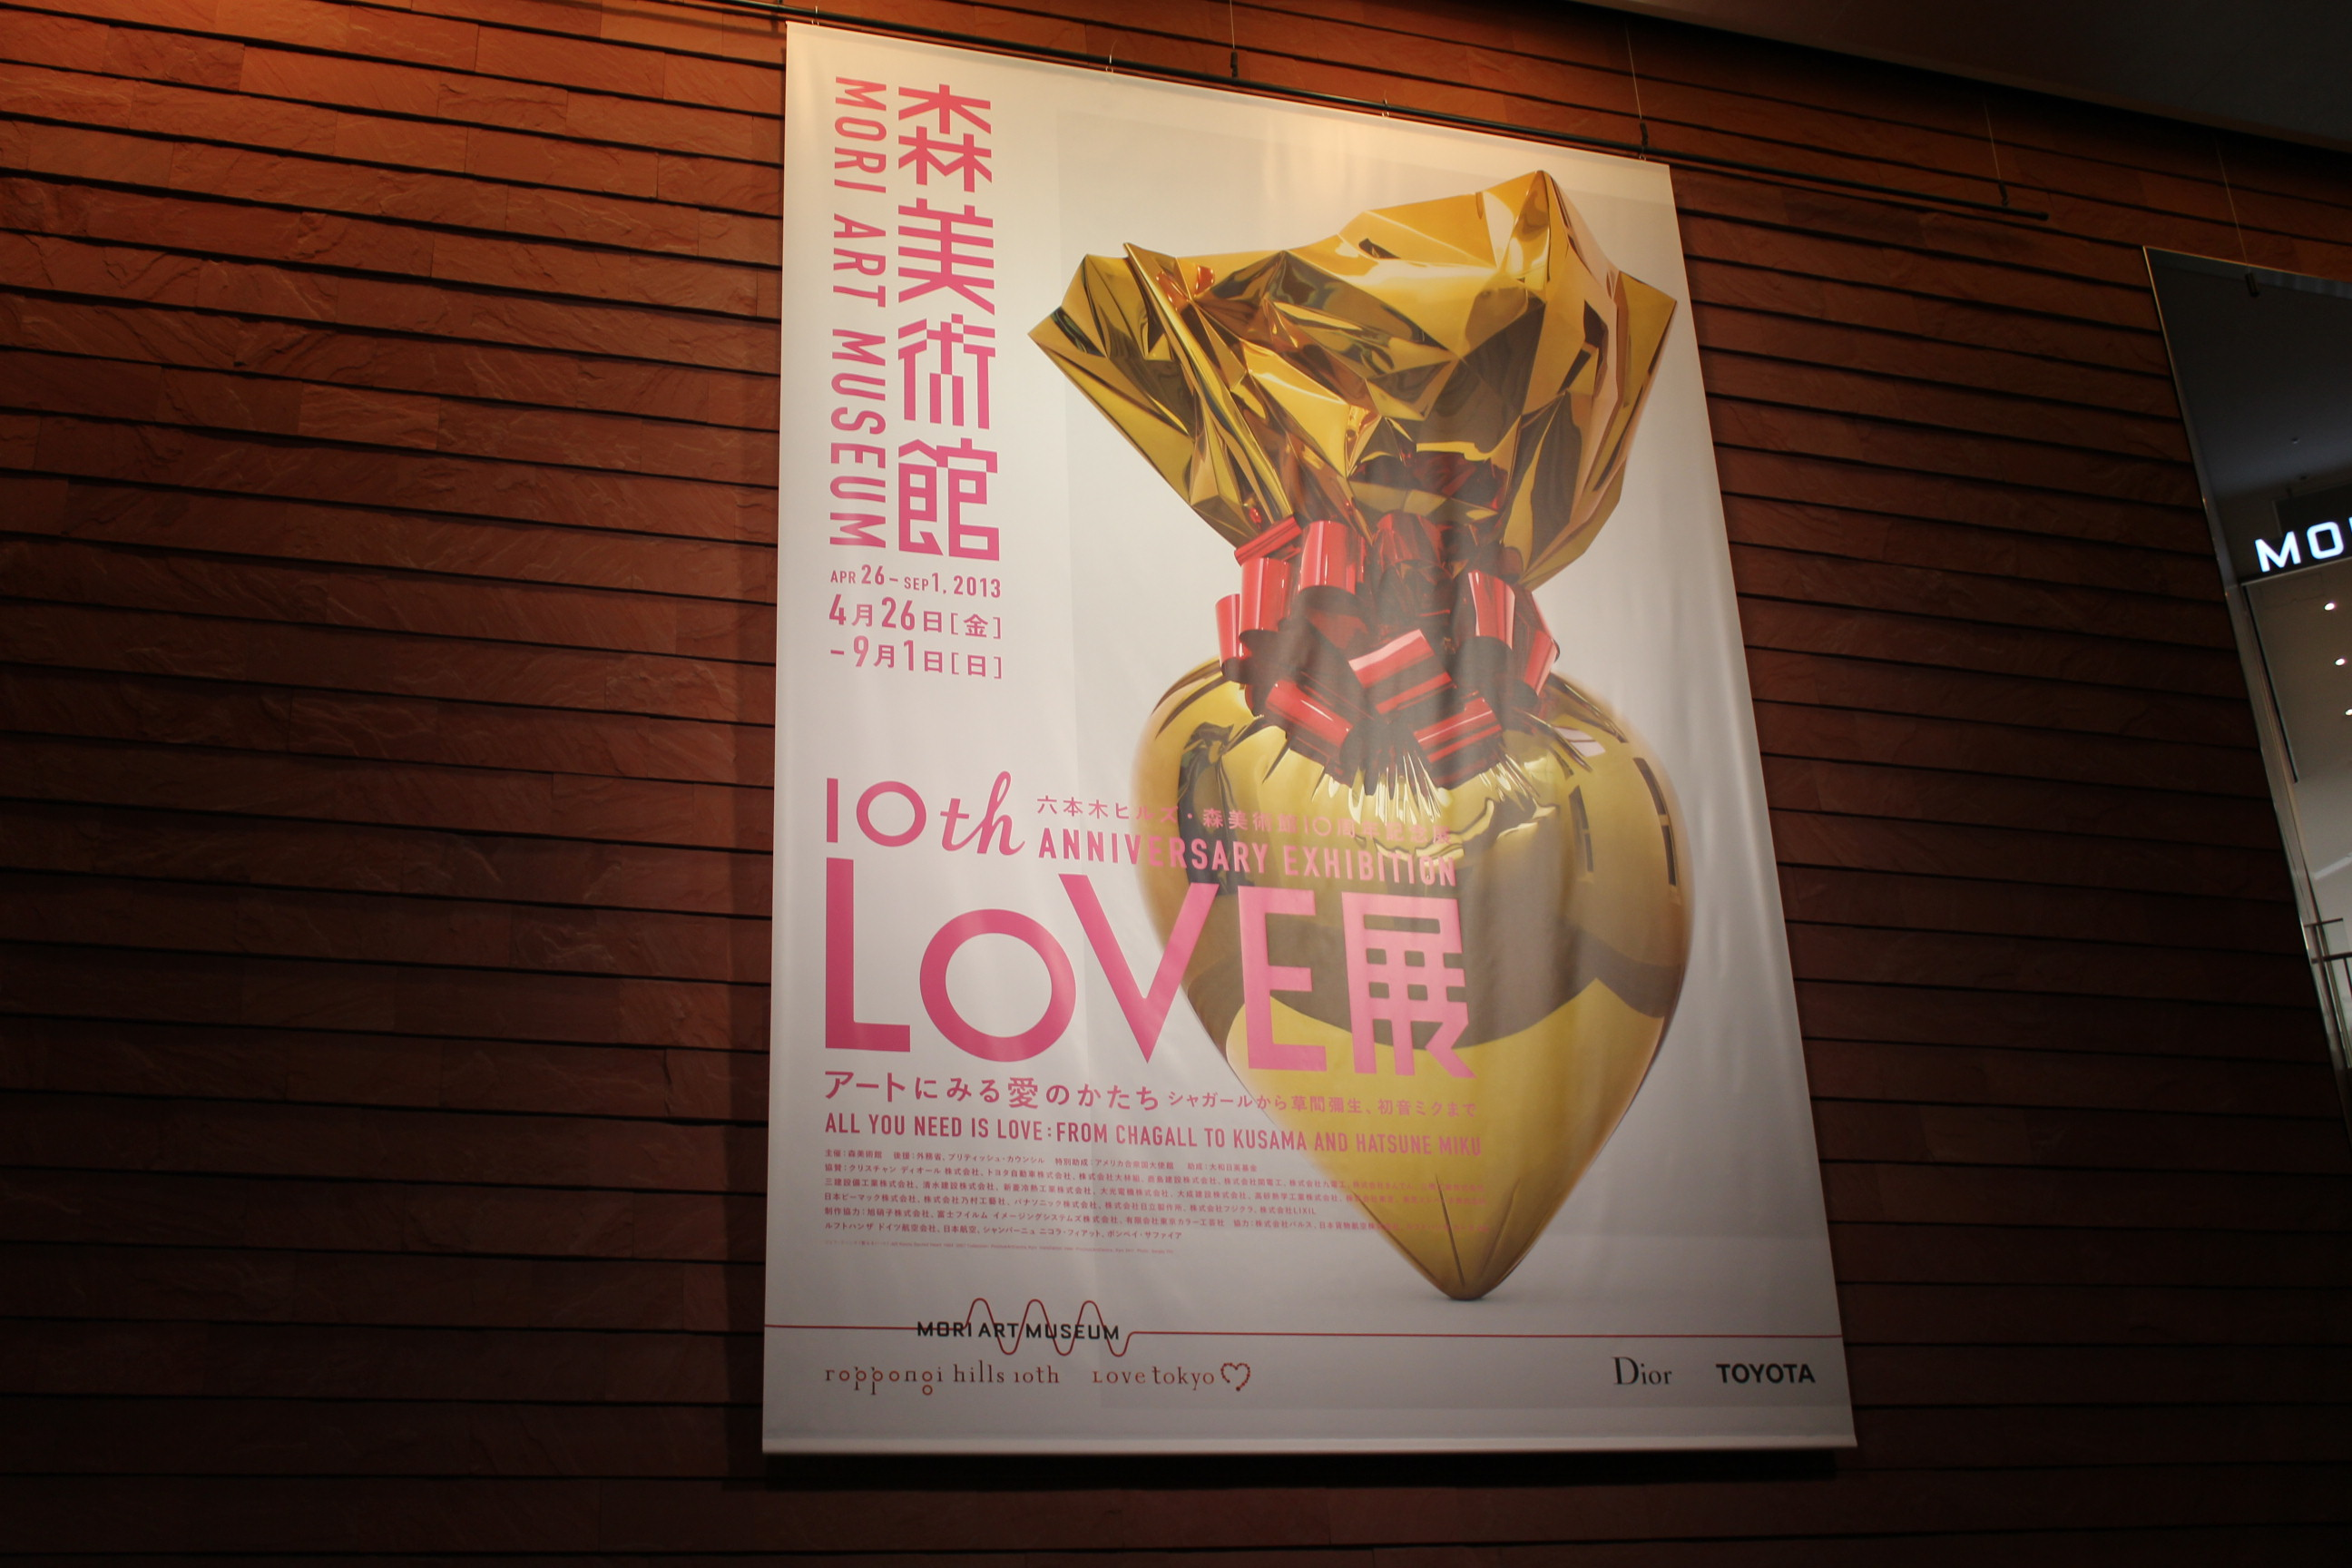 Roppongi Hills and Mori Art Museum 10th Anniversary Exhibition